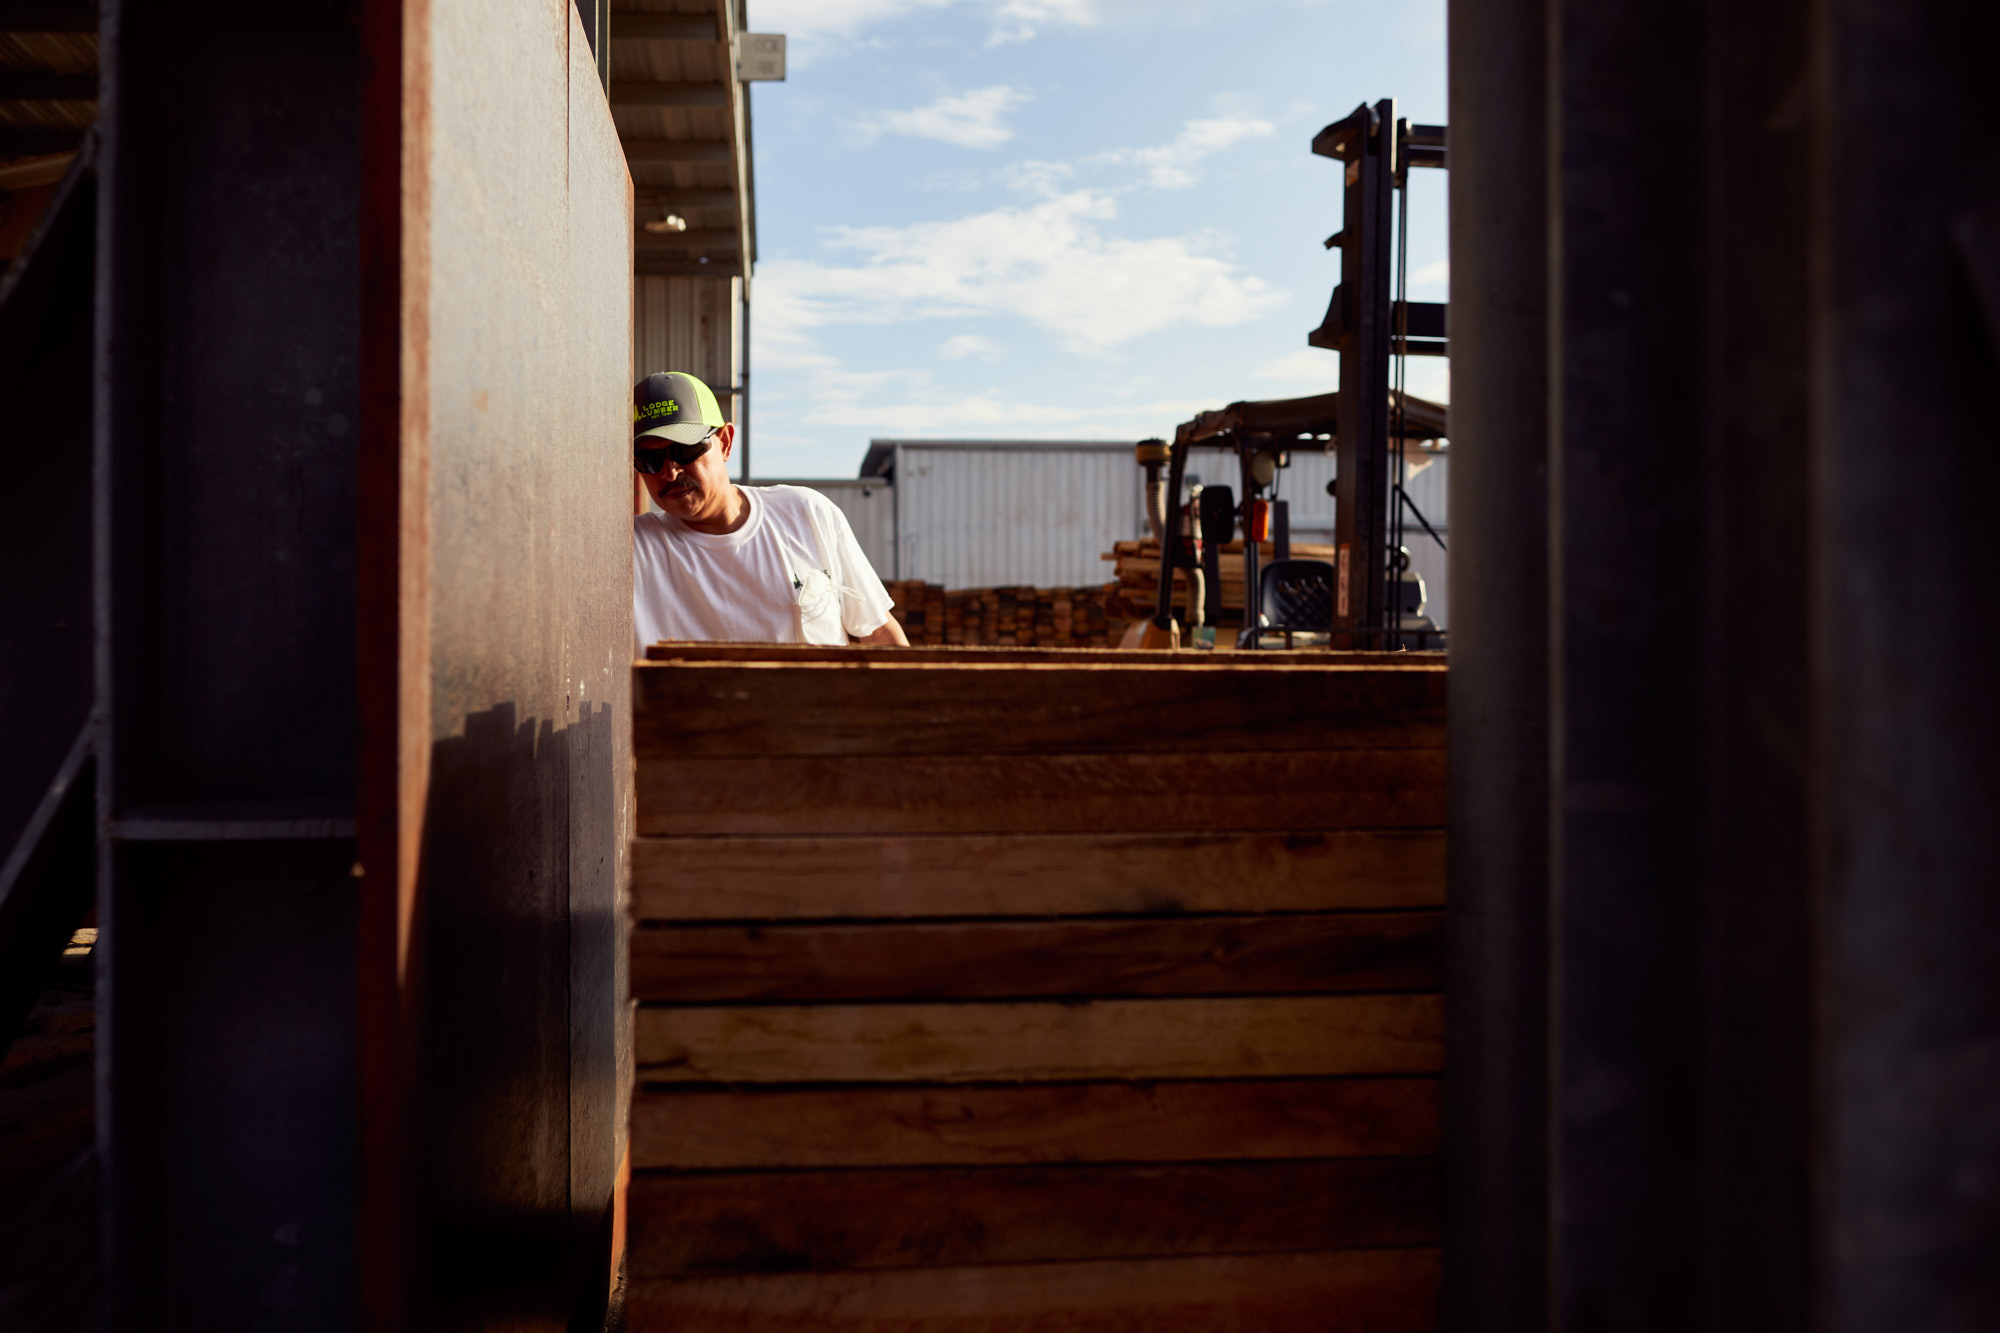 Lumber Yard Worker | Industrial Photography